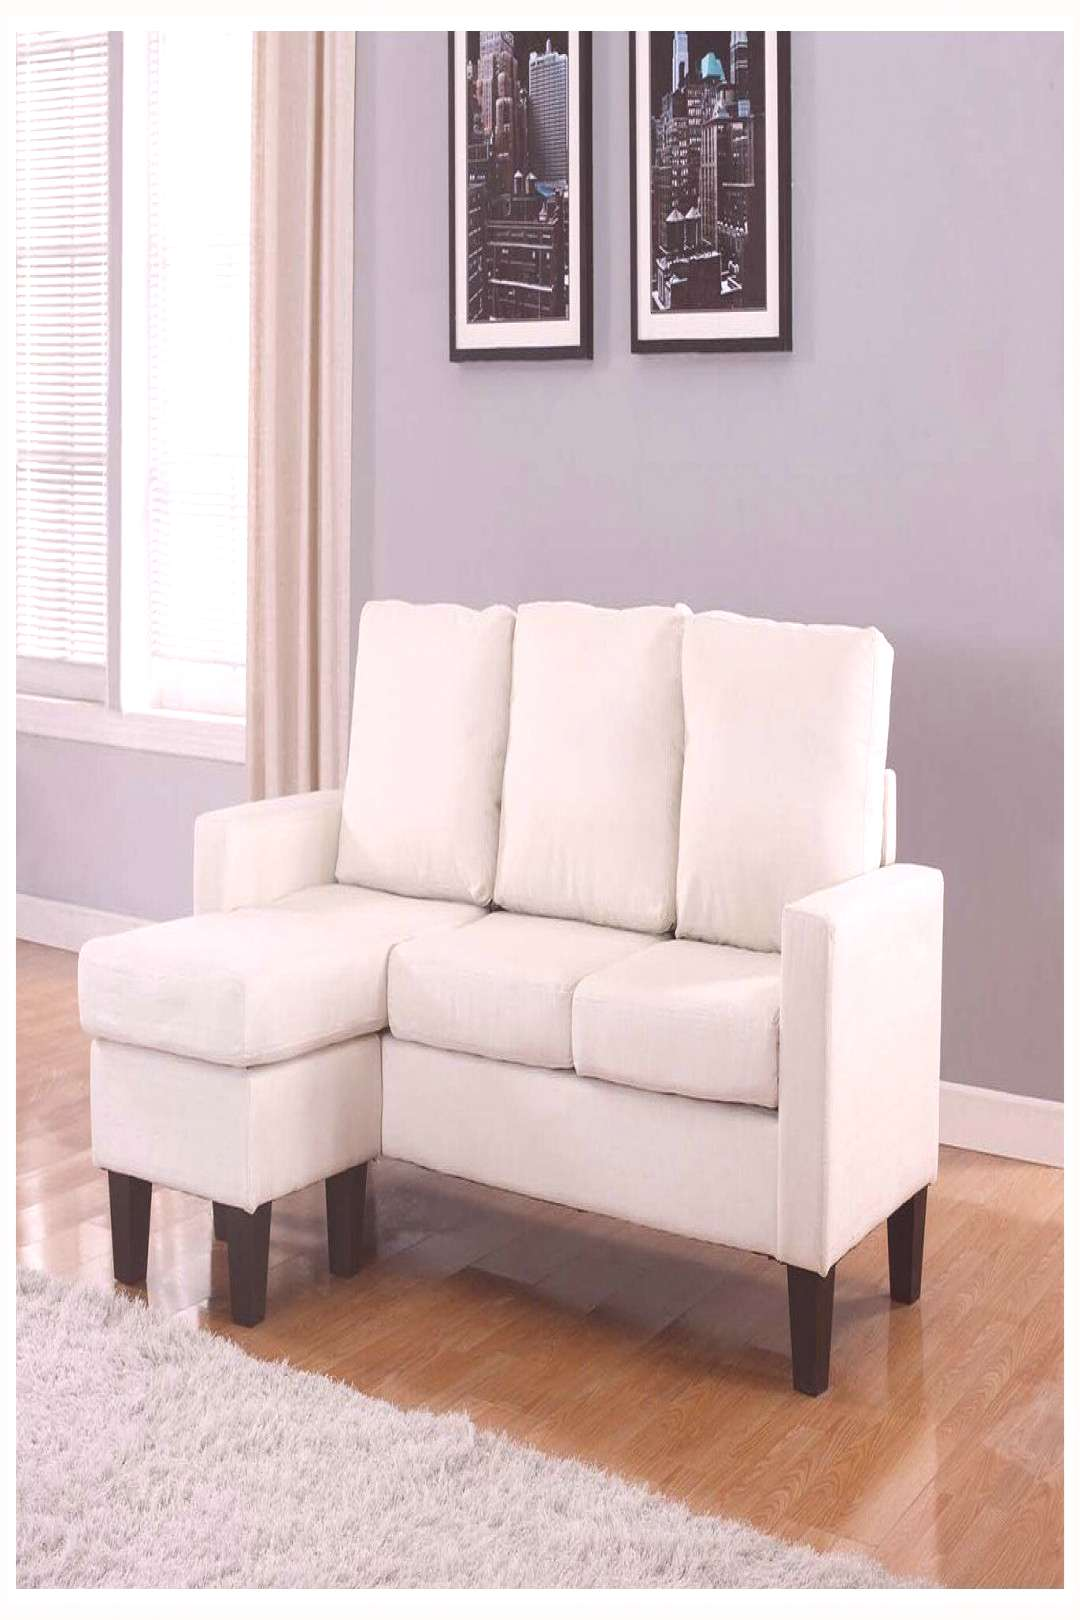 57 reference of sectional sofa for sale pittsburgh sectional sofa for sale pittsburgh-#sectional Pl